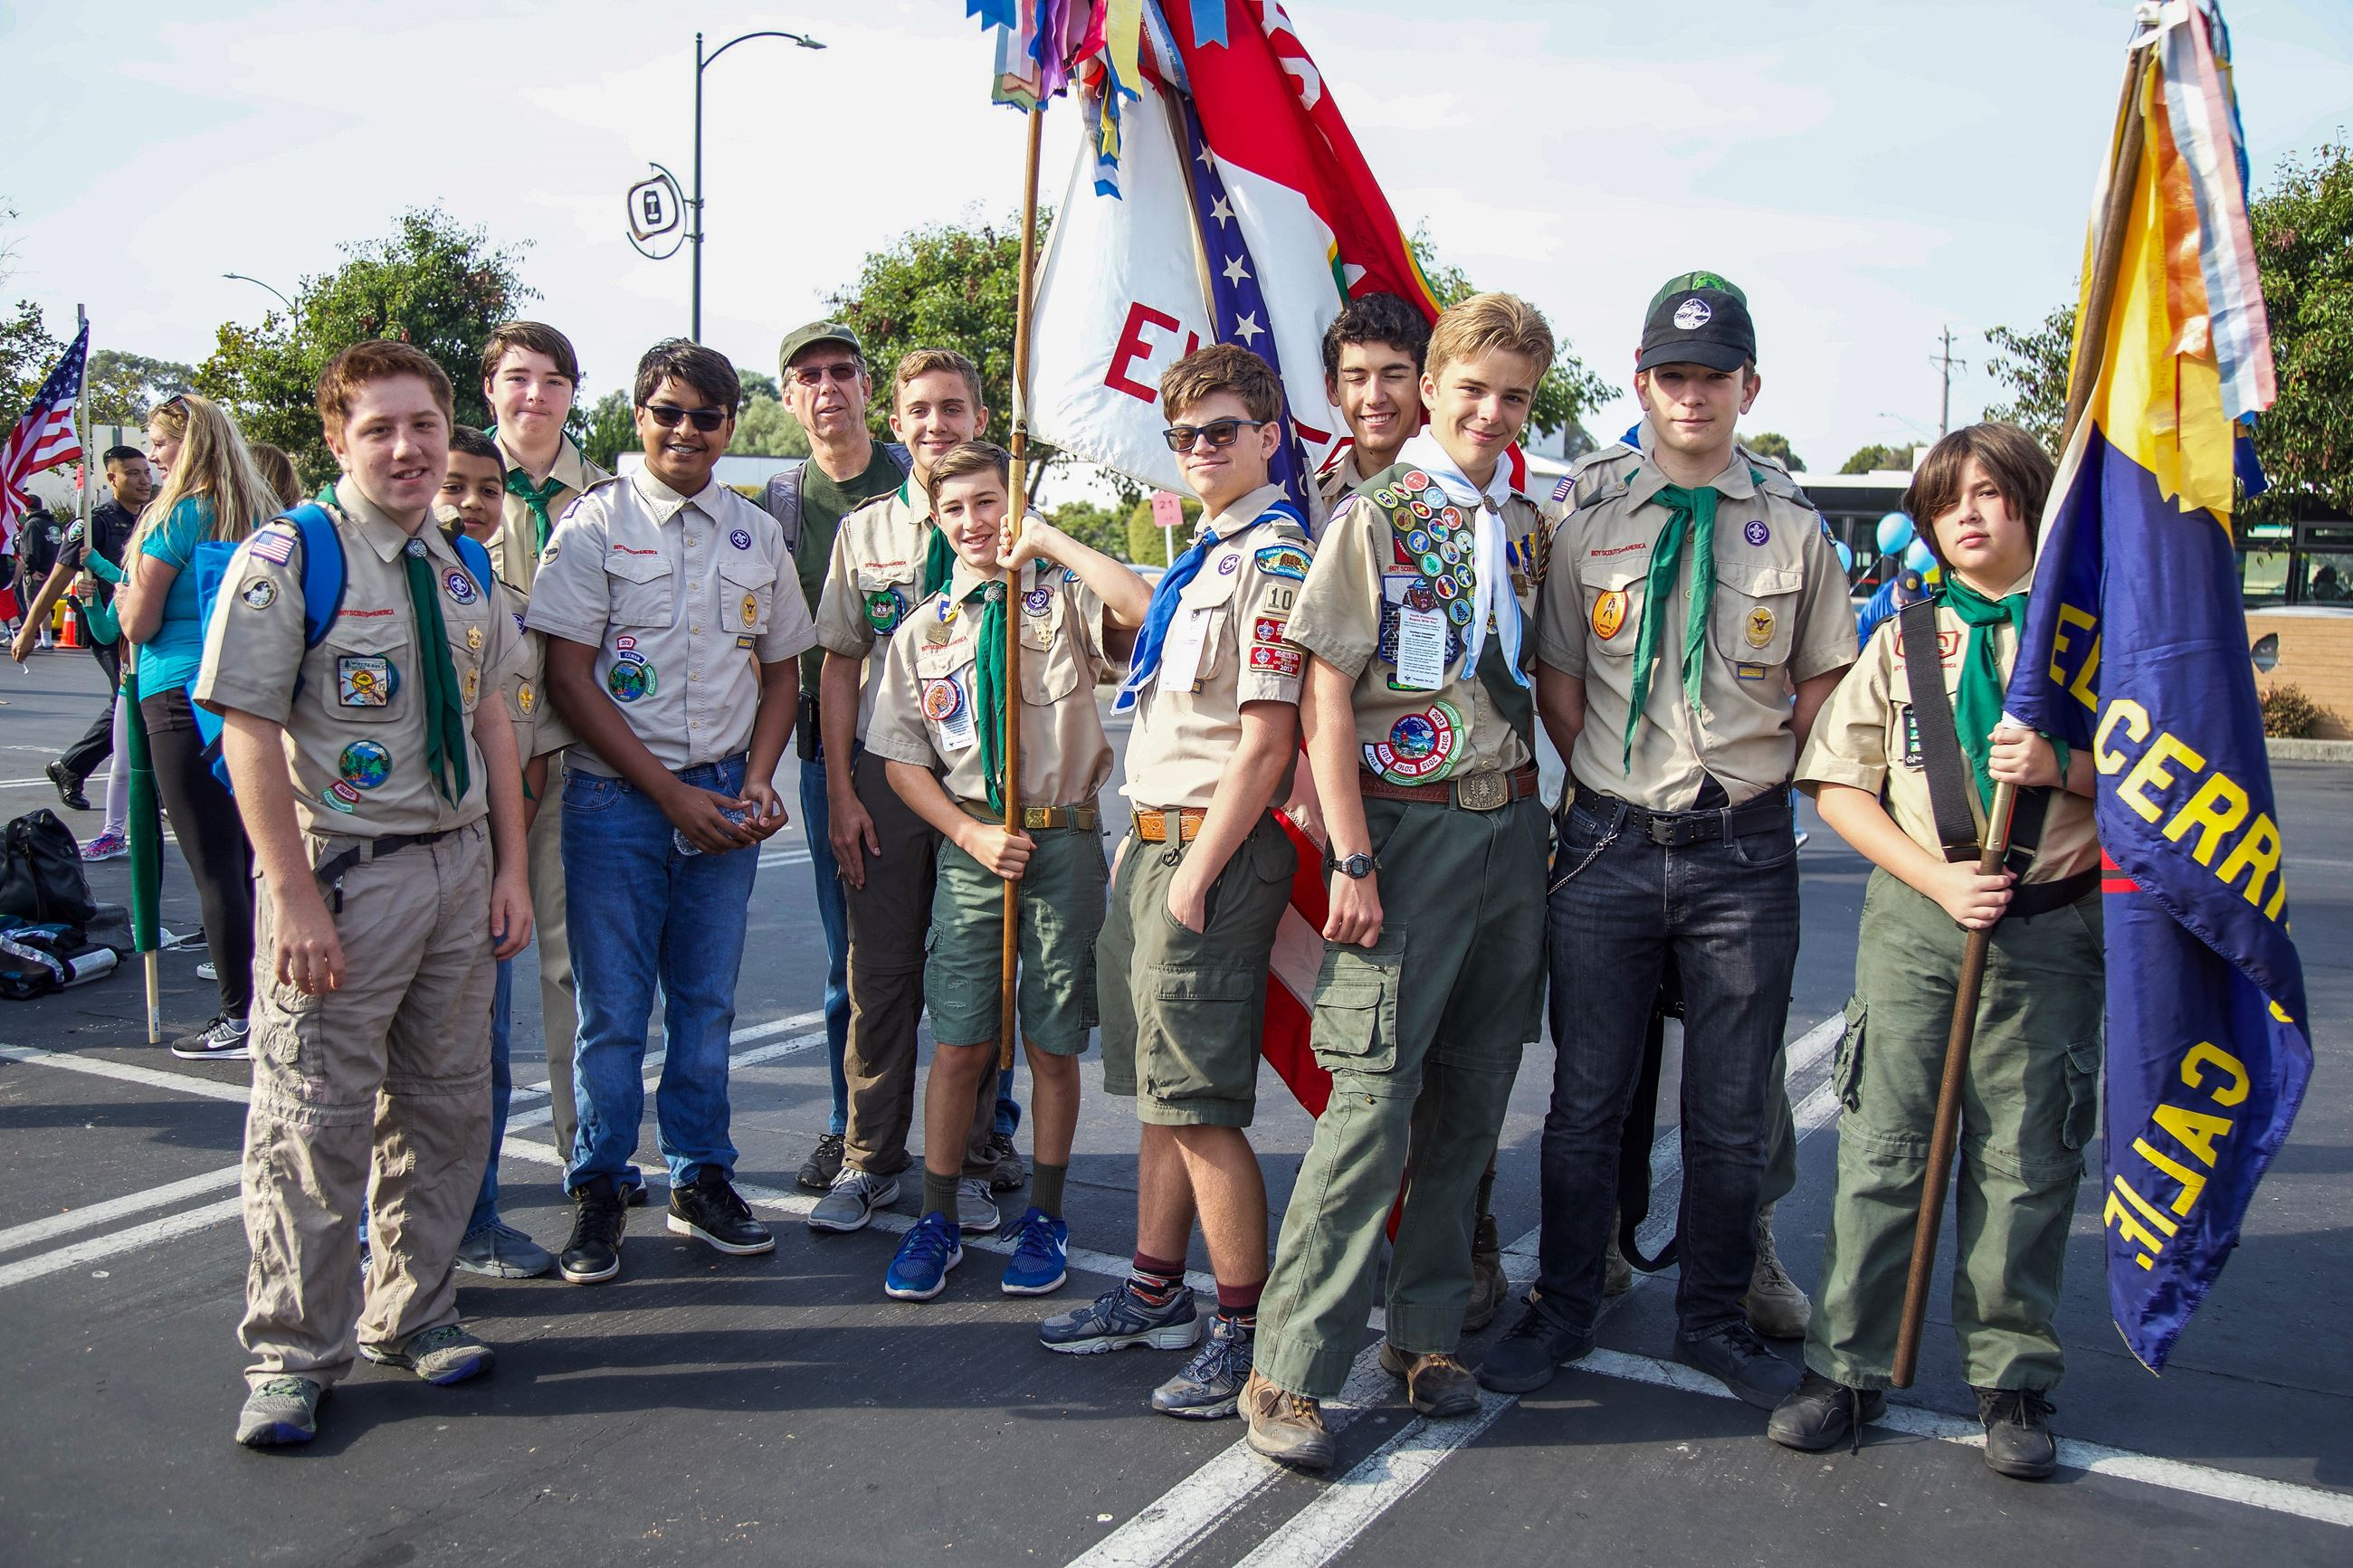 029 Scouts 2 - Photo by Marin Stuart